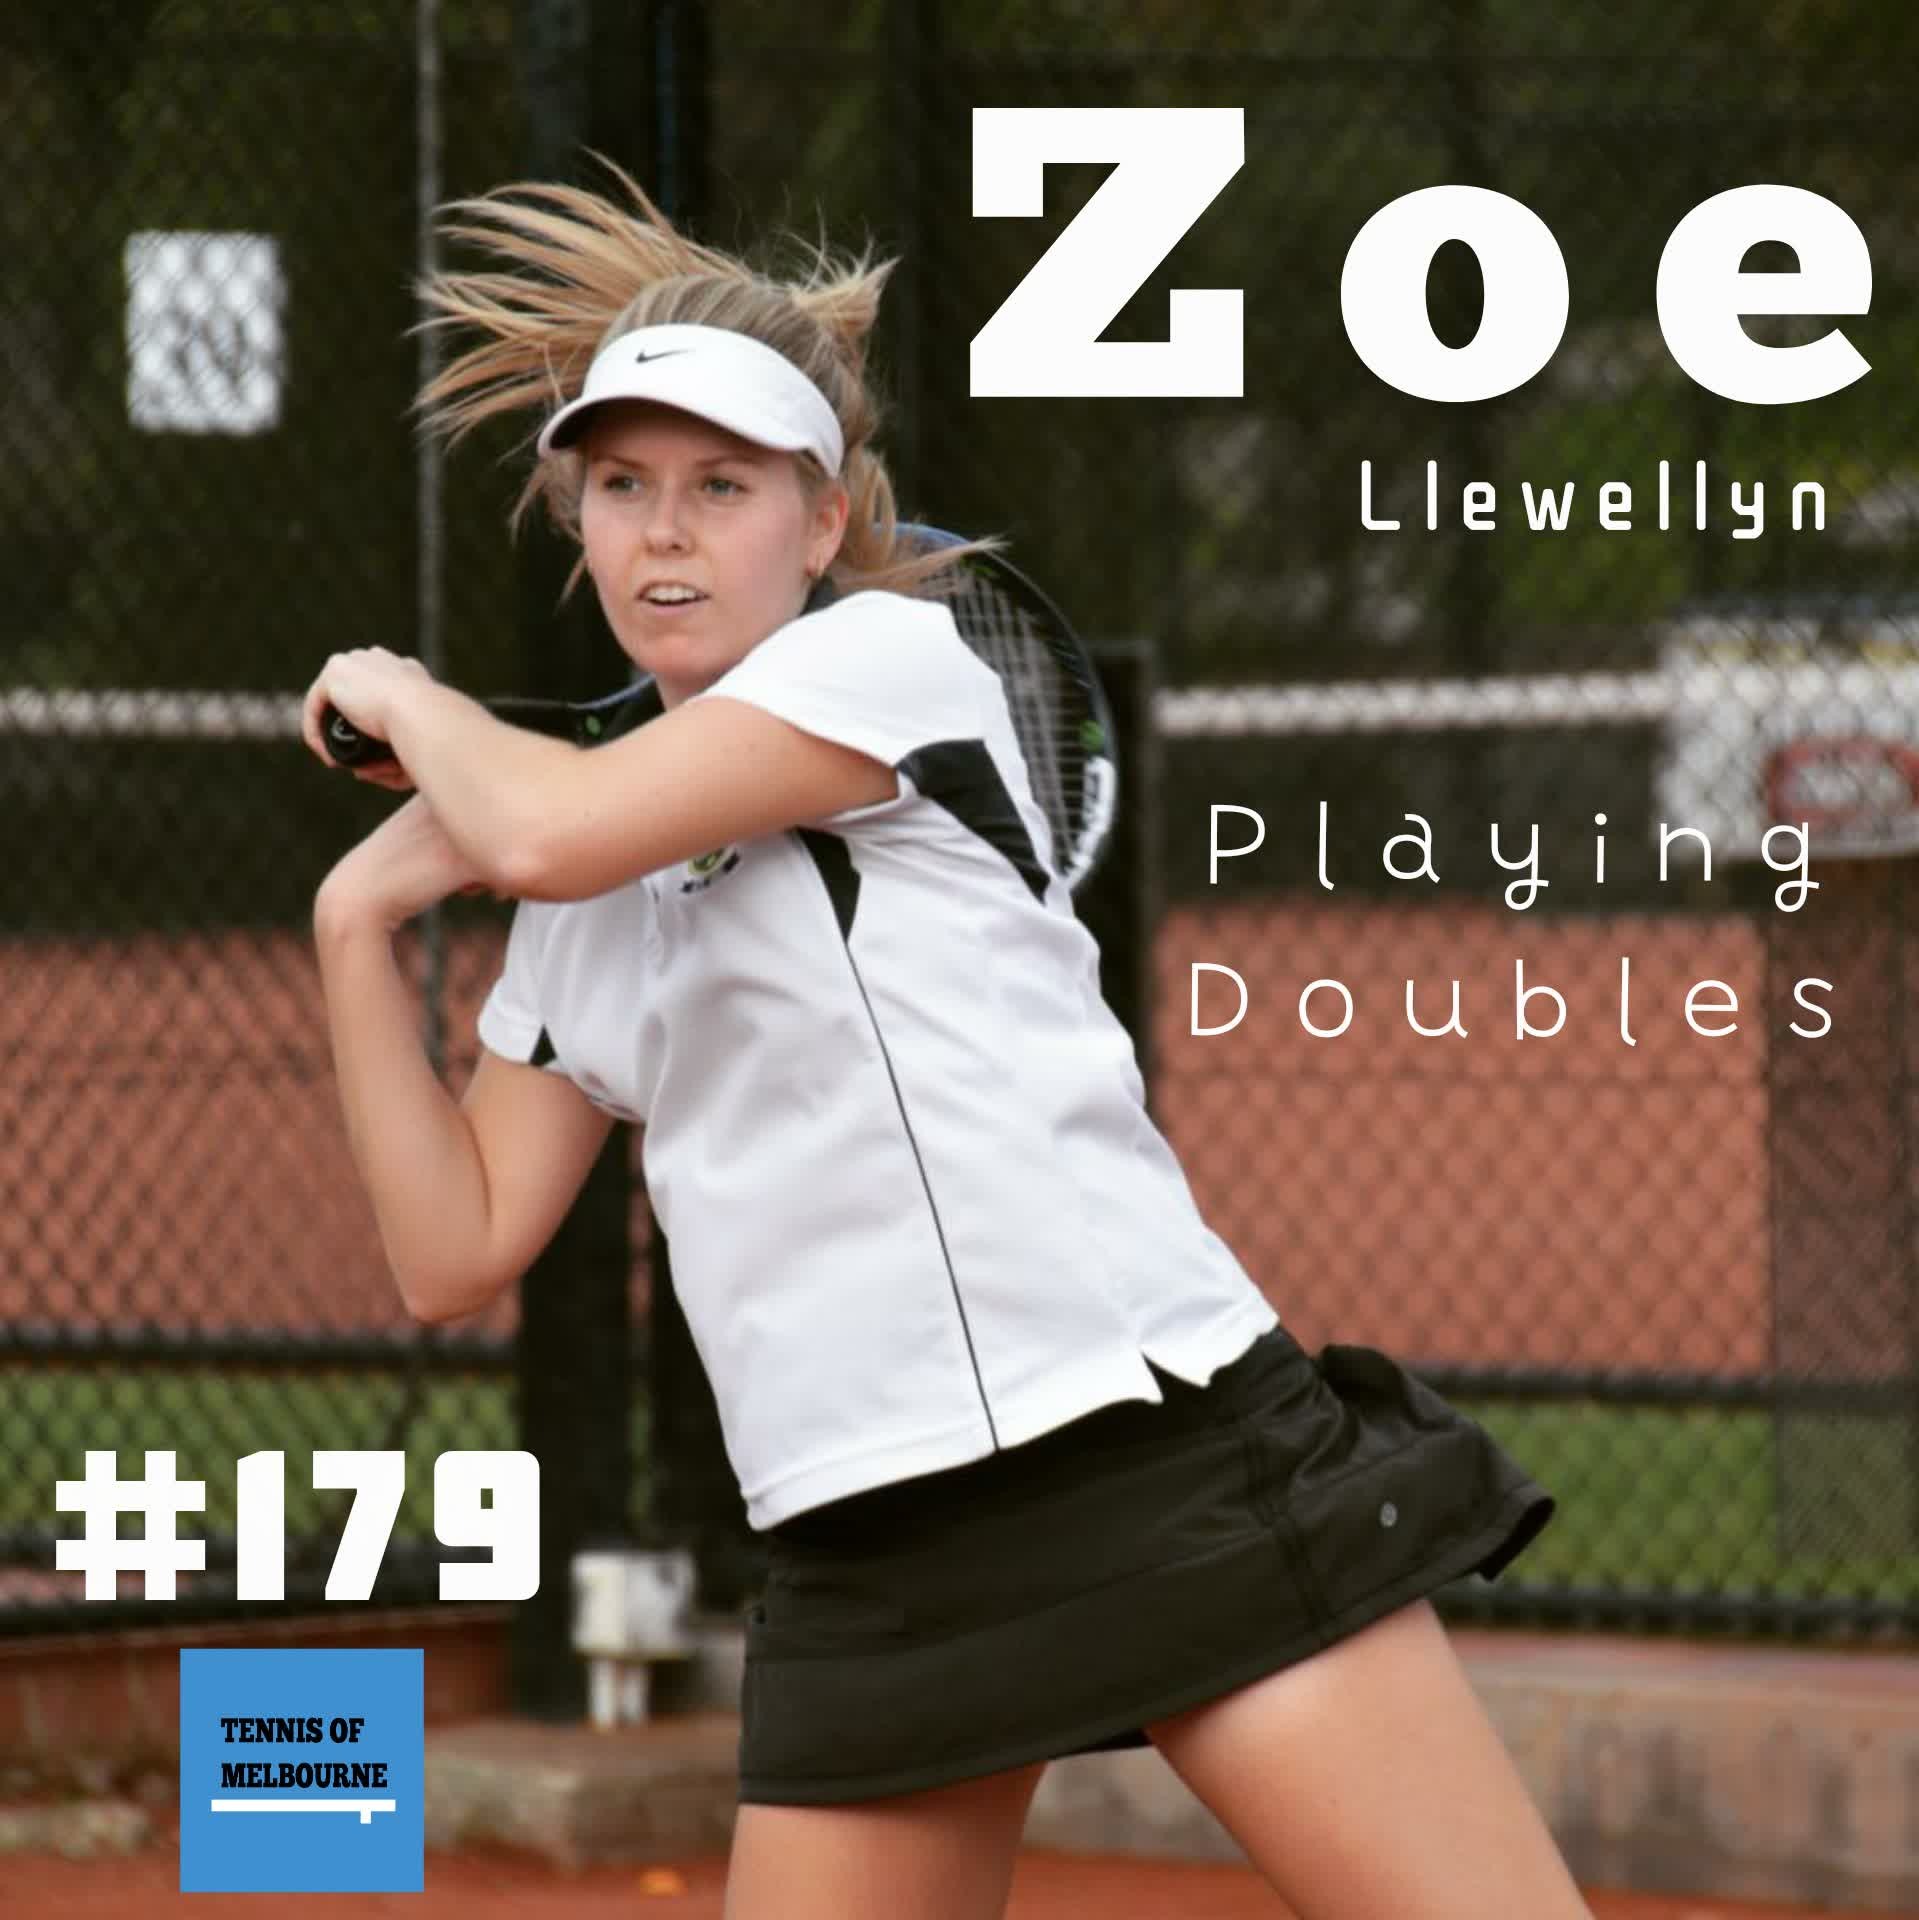 #179 Zoe Llewellyn | Playing Doubles